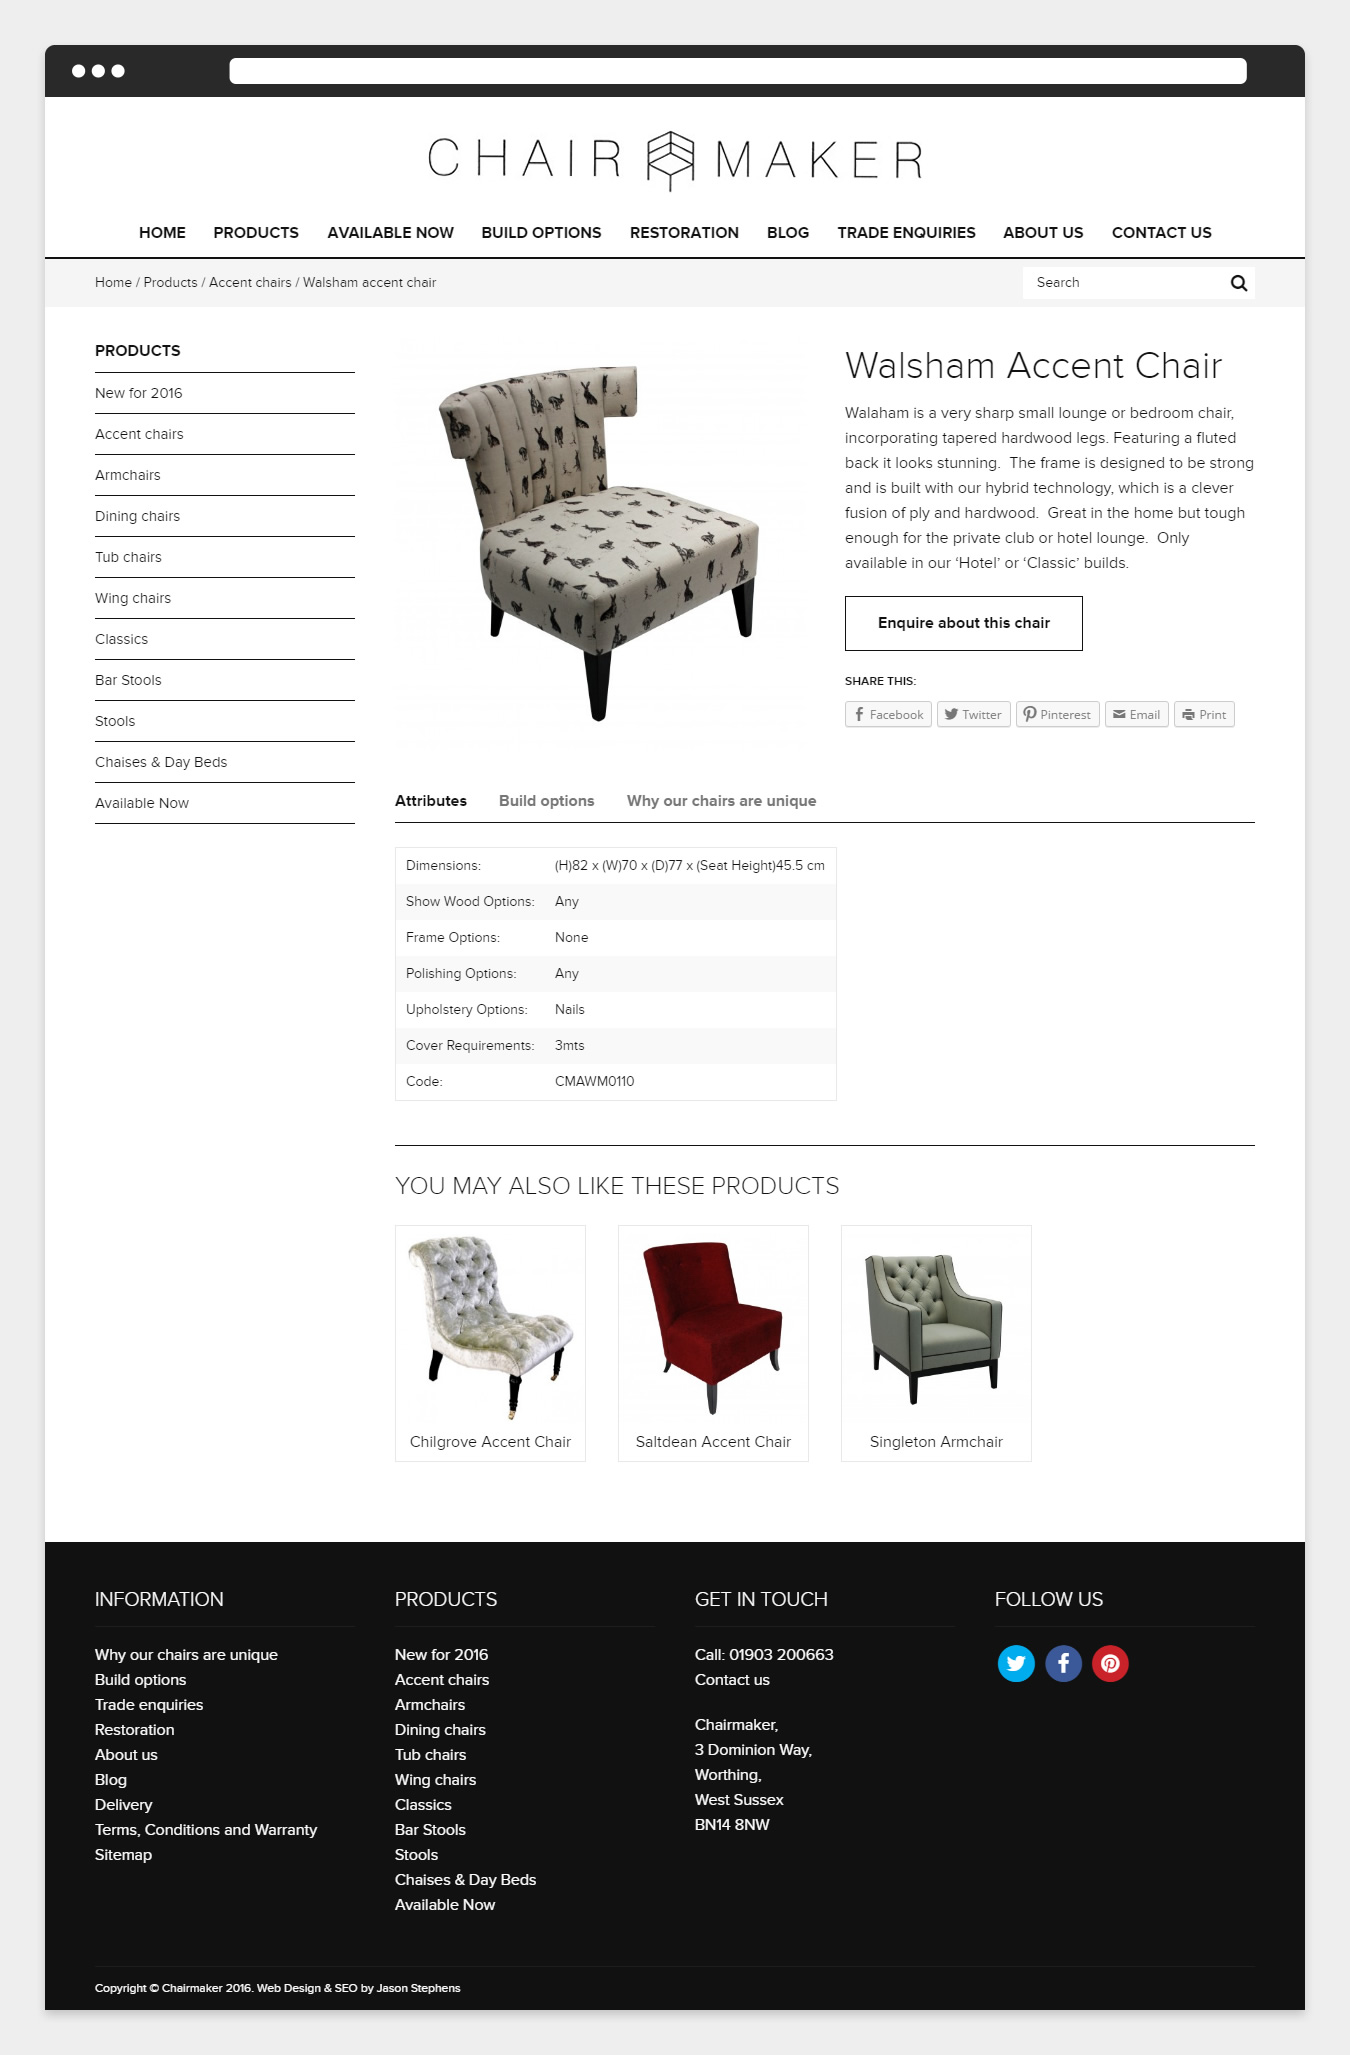 Product page design on the Chairmaker website